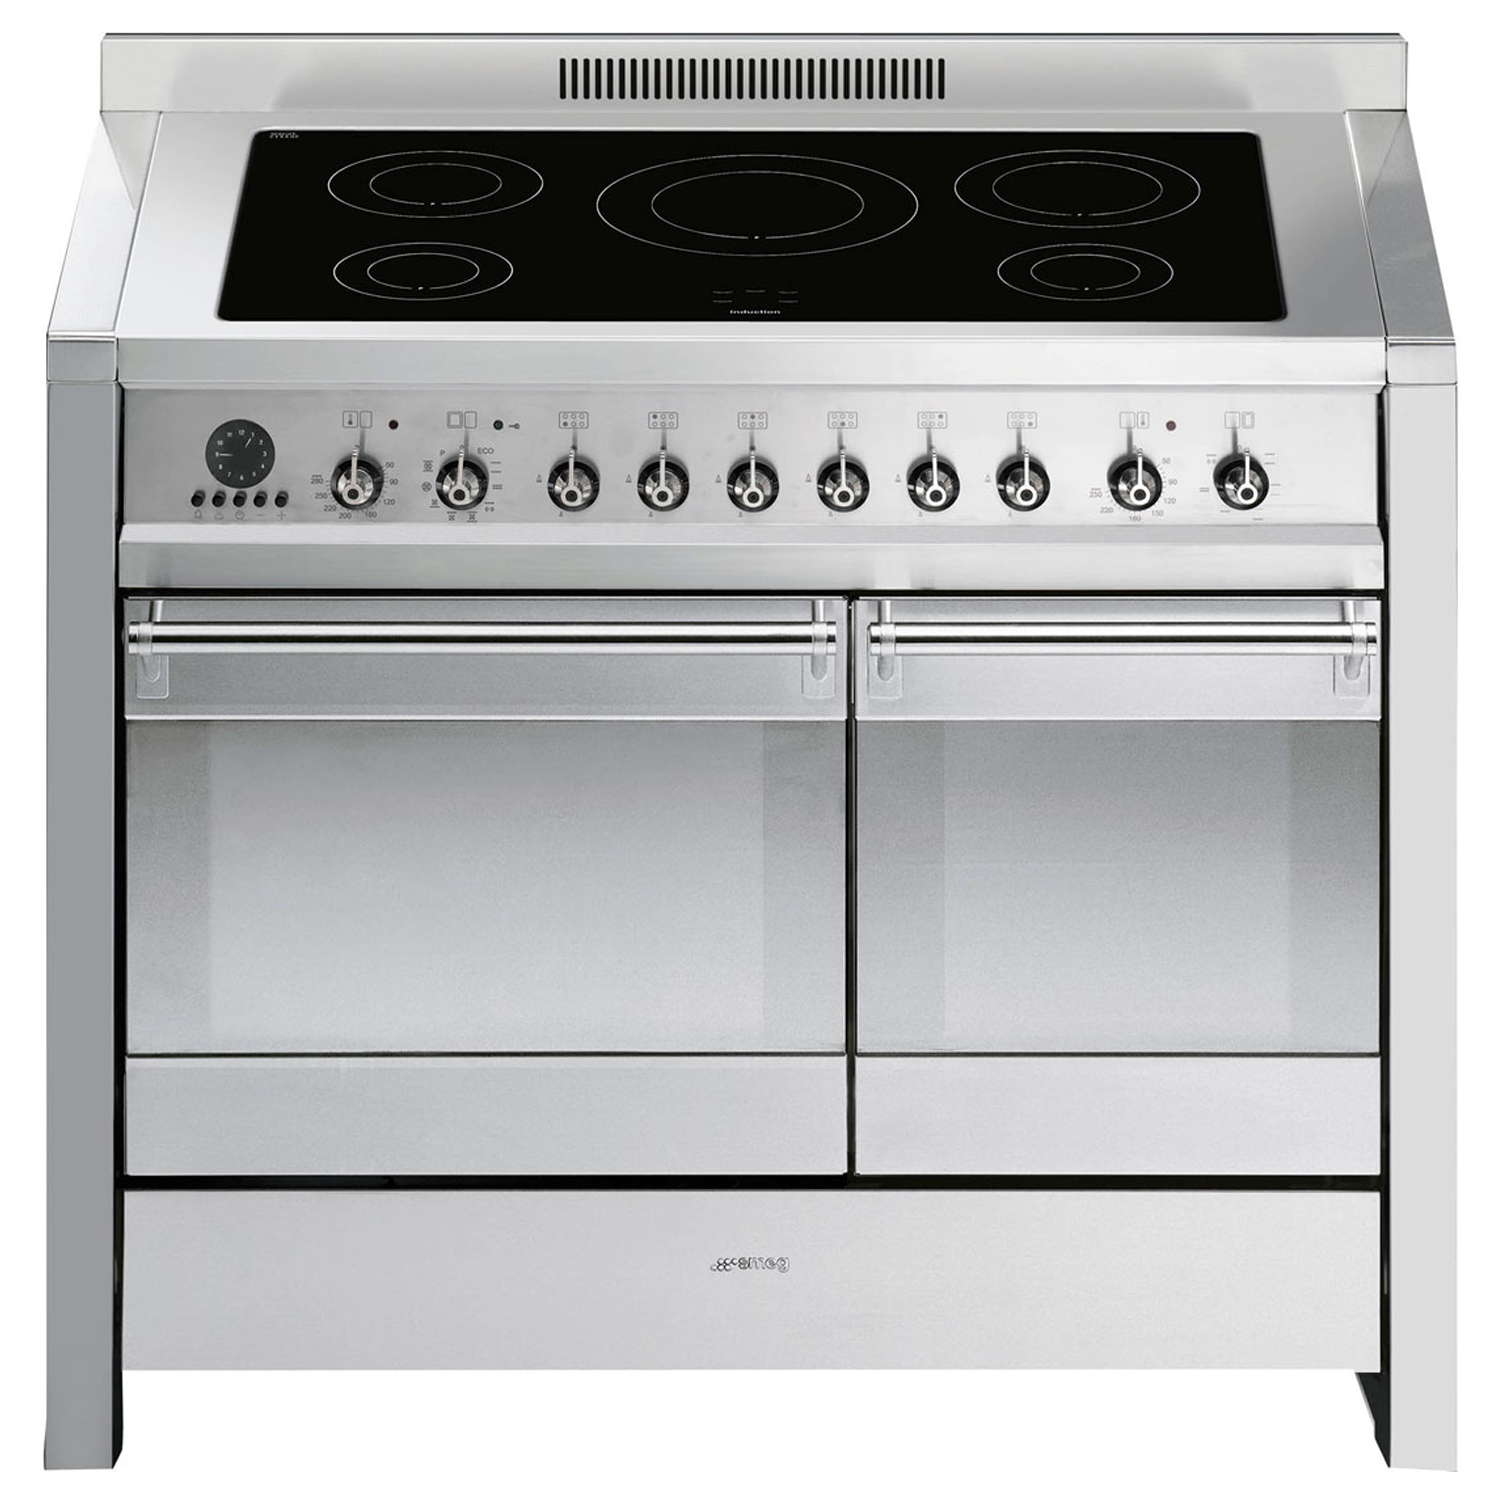 Smeg A2pyid-8 Cooker 100cm, Stainless Steel